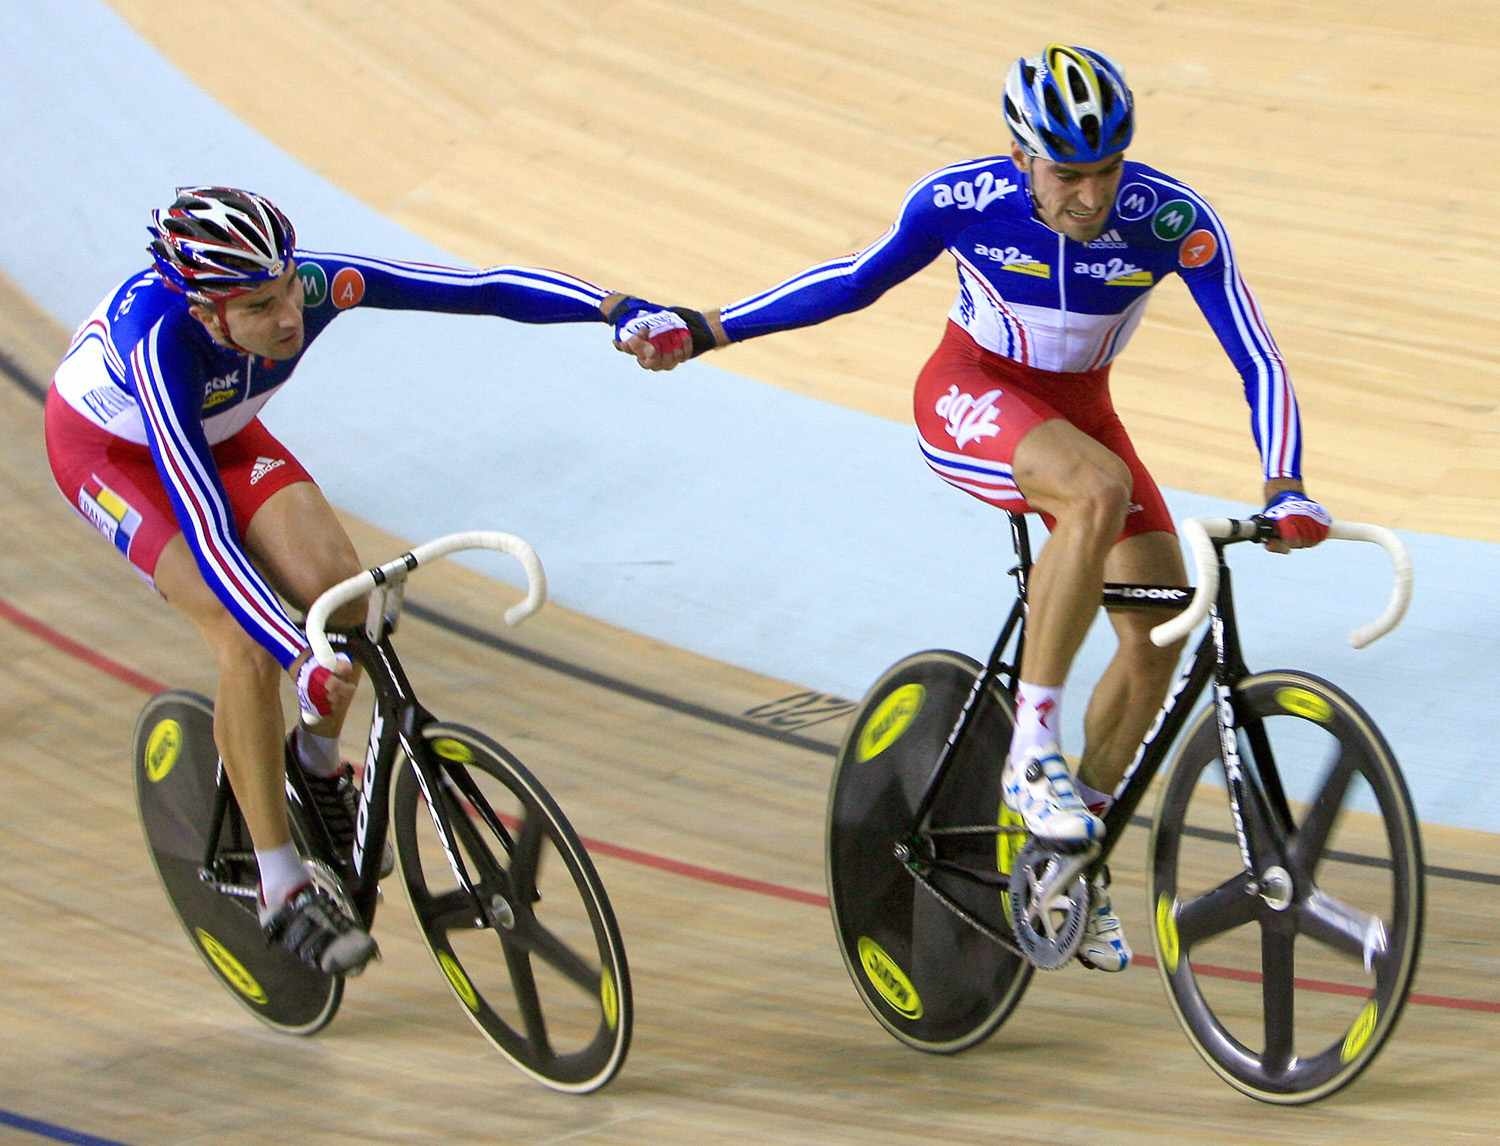 Christophe Riblon (R) of France and teammate Jerome Neuville (L) exchange during the Madison